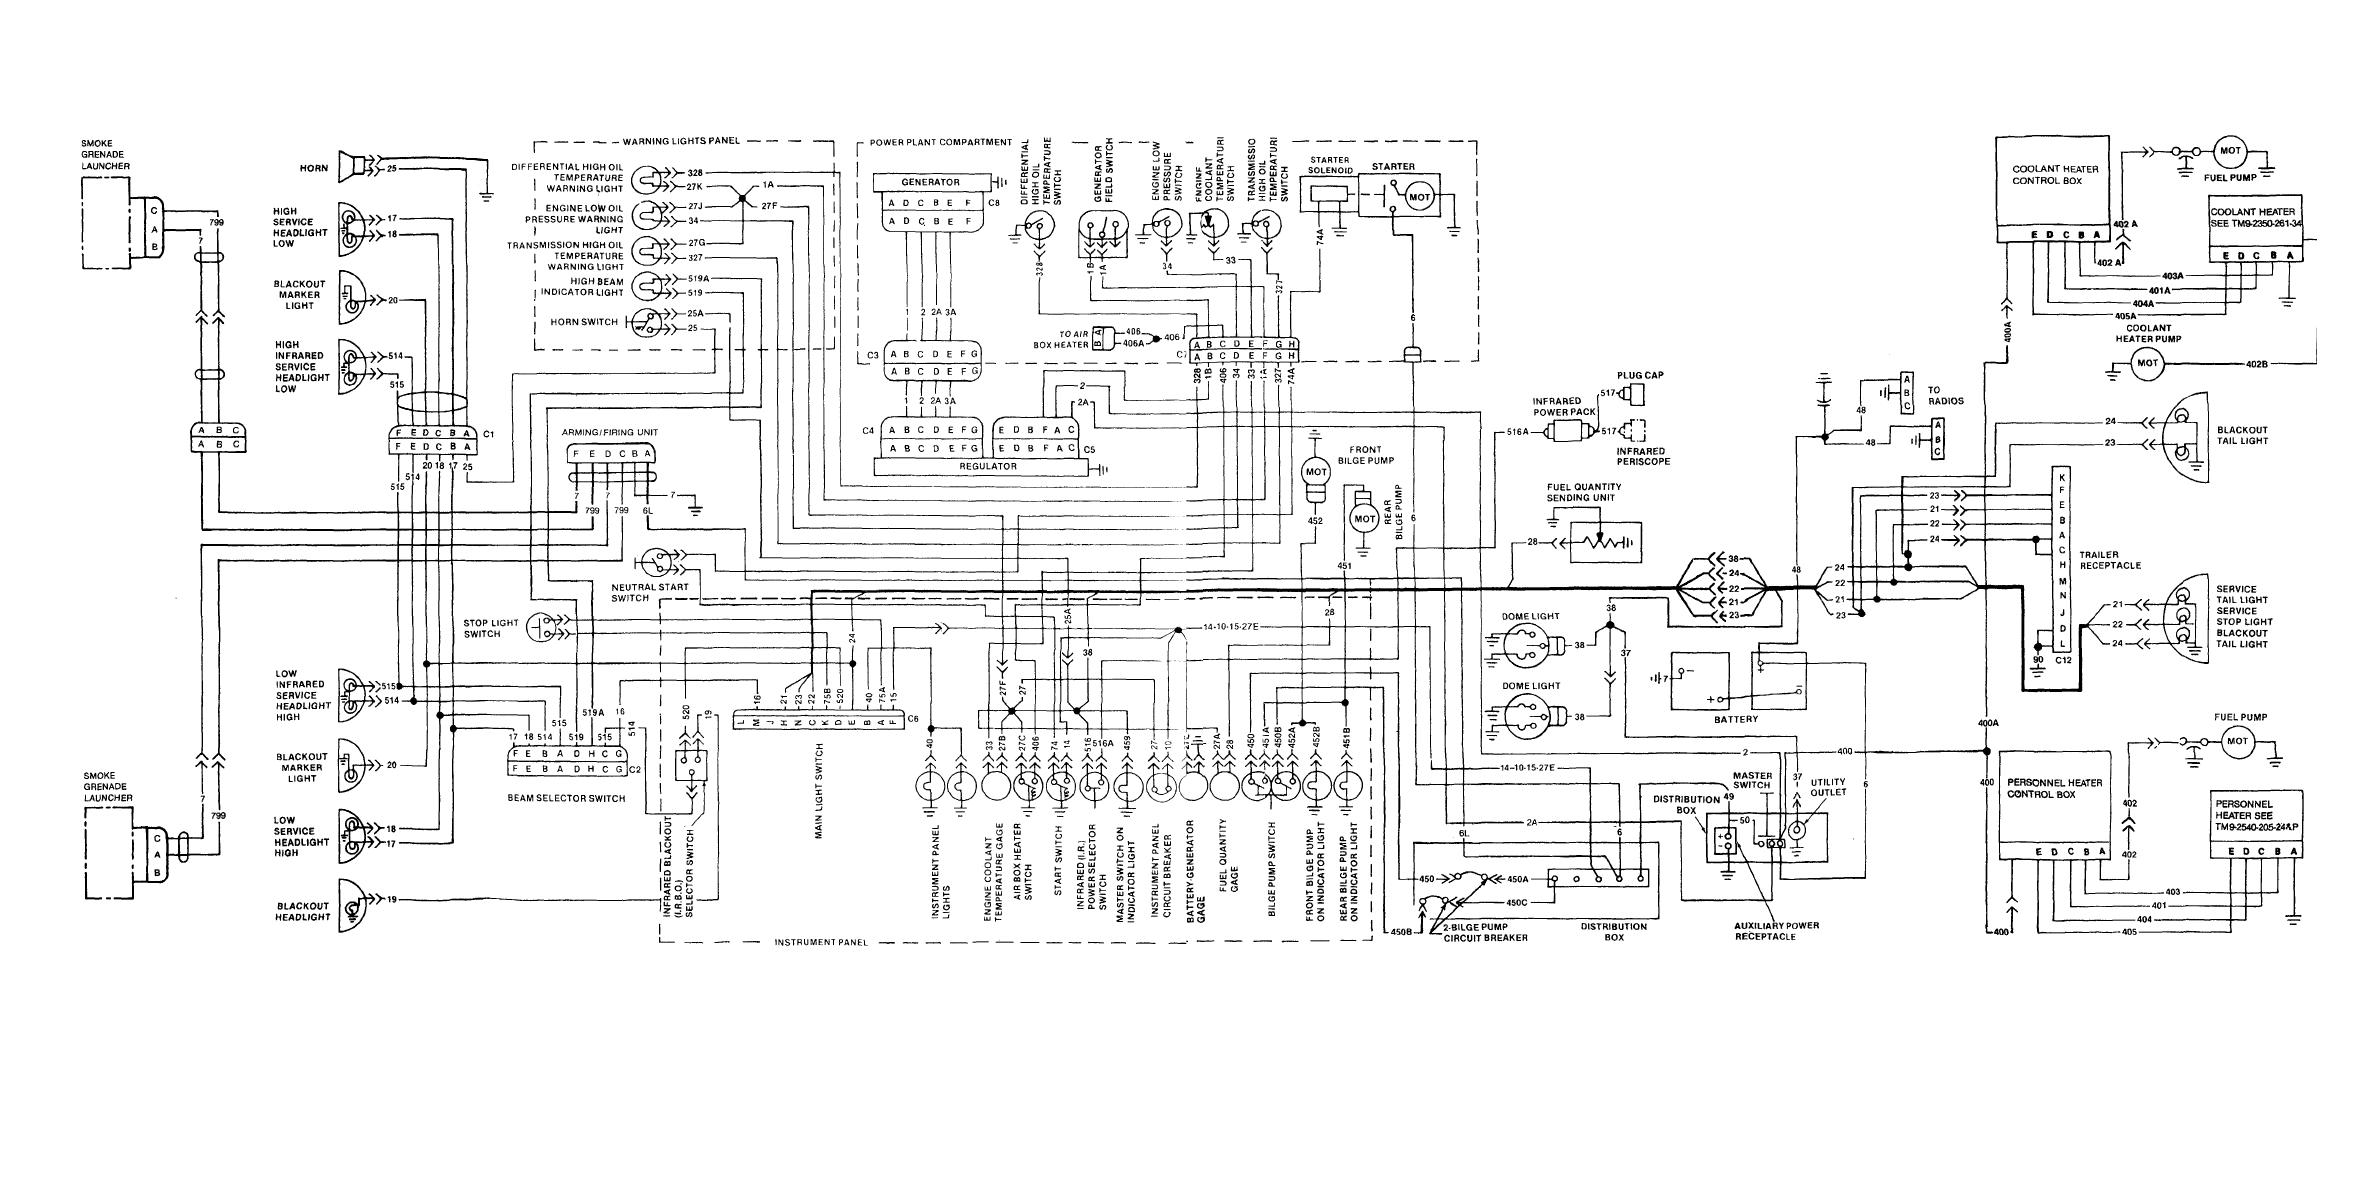 M113A2 ELECTRICAL    WIRING       DIAGRAM    200 AMP GENERATOR